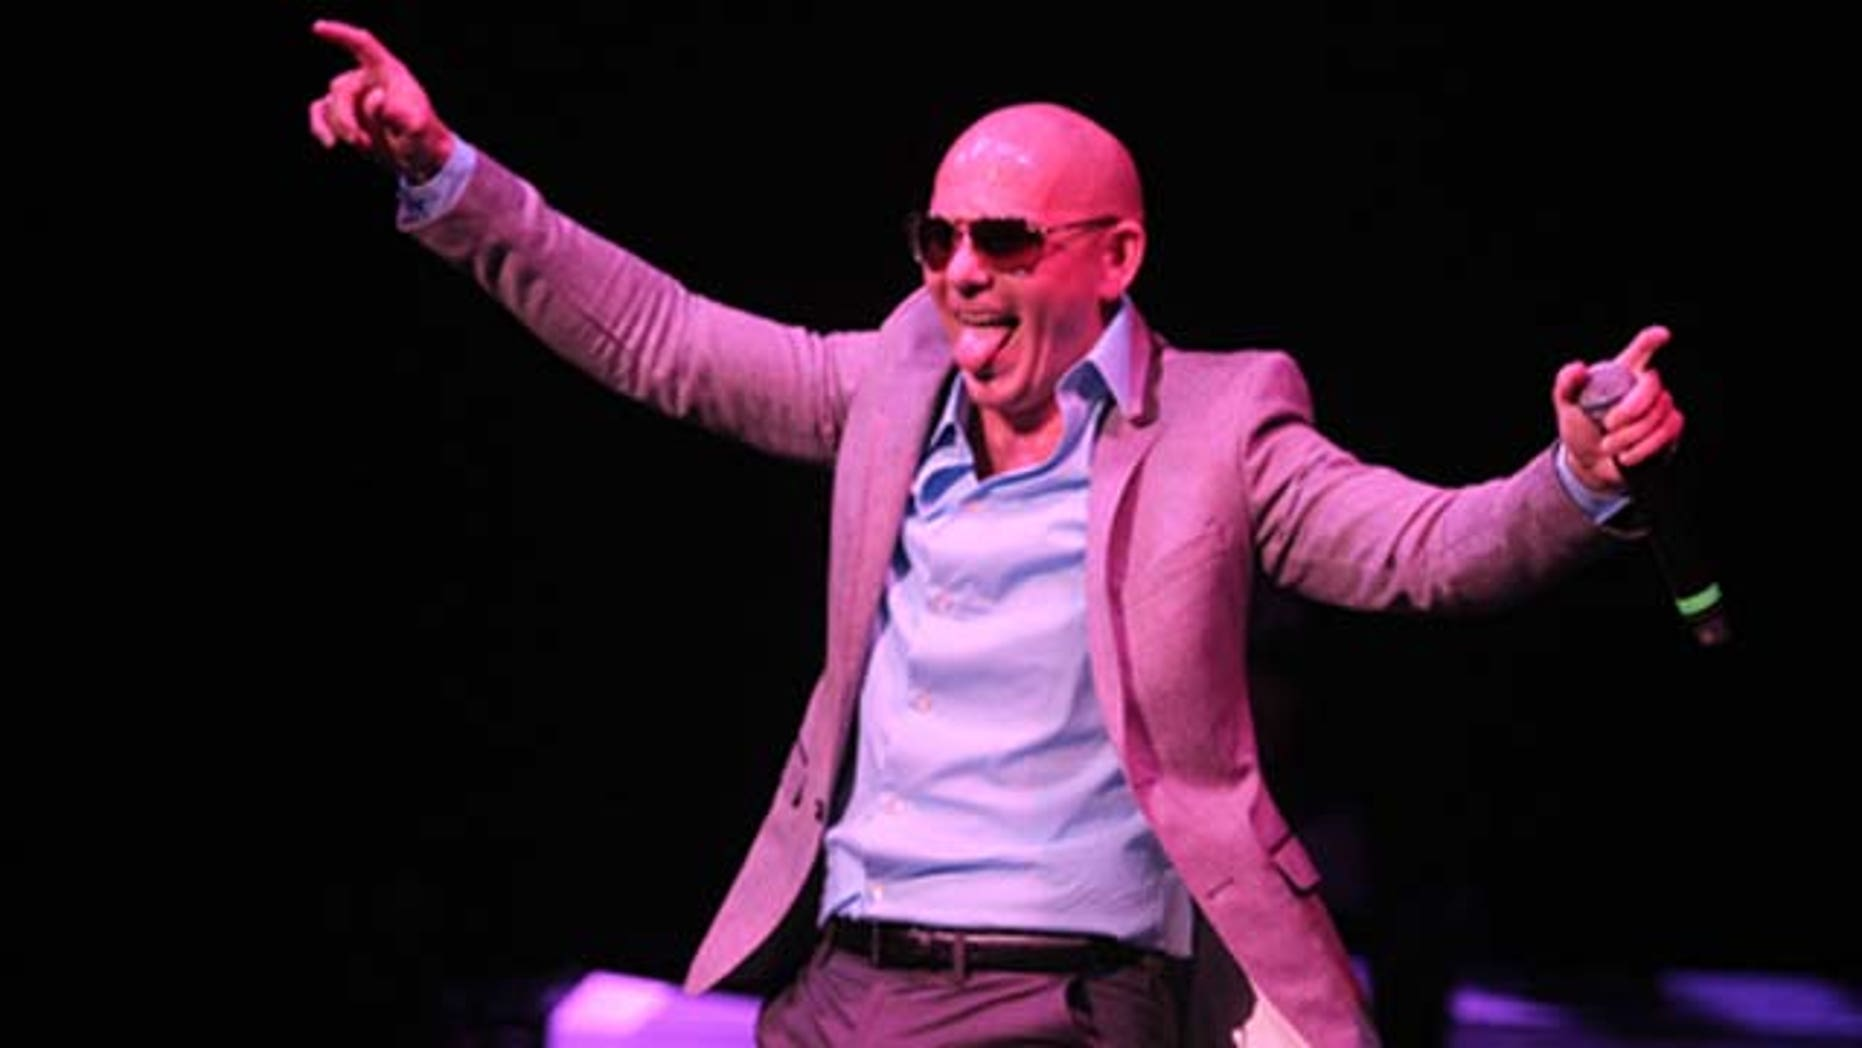 Sept. 11, 2010: Rapper Pitbull performs onstage during Motorola at Pérez Hilton's 'One Night in Los Angeles' at the Wiltern Theatre in Los Angeles, Calif.